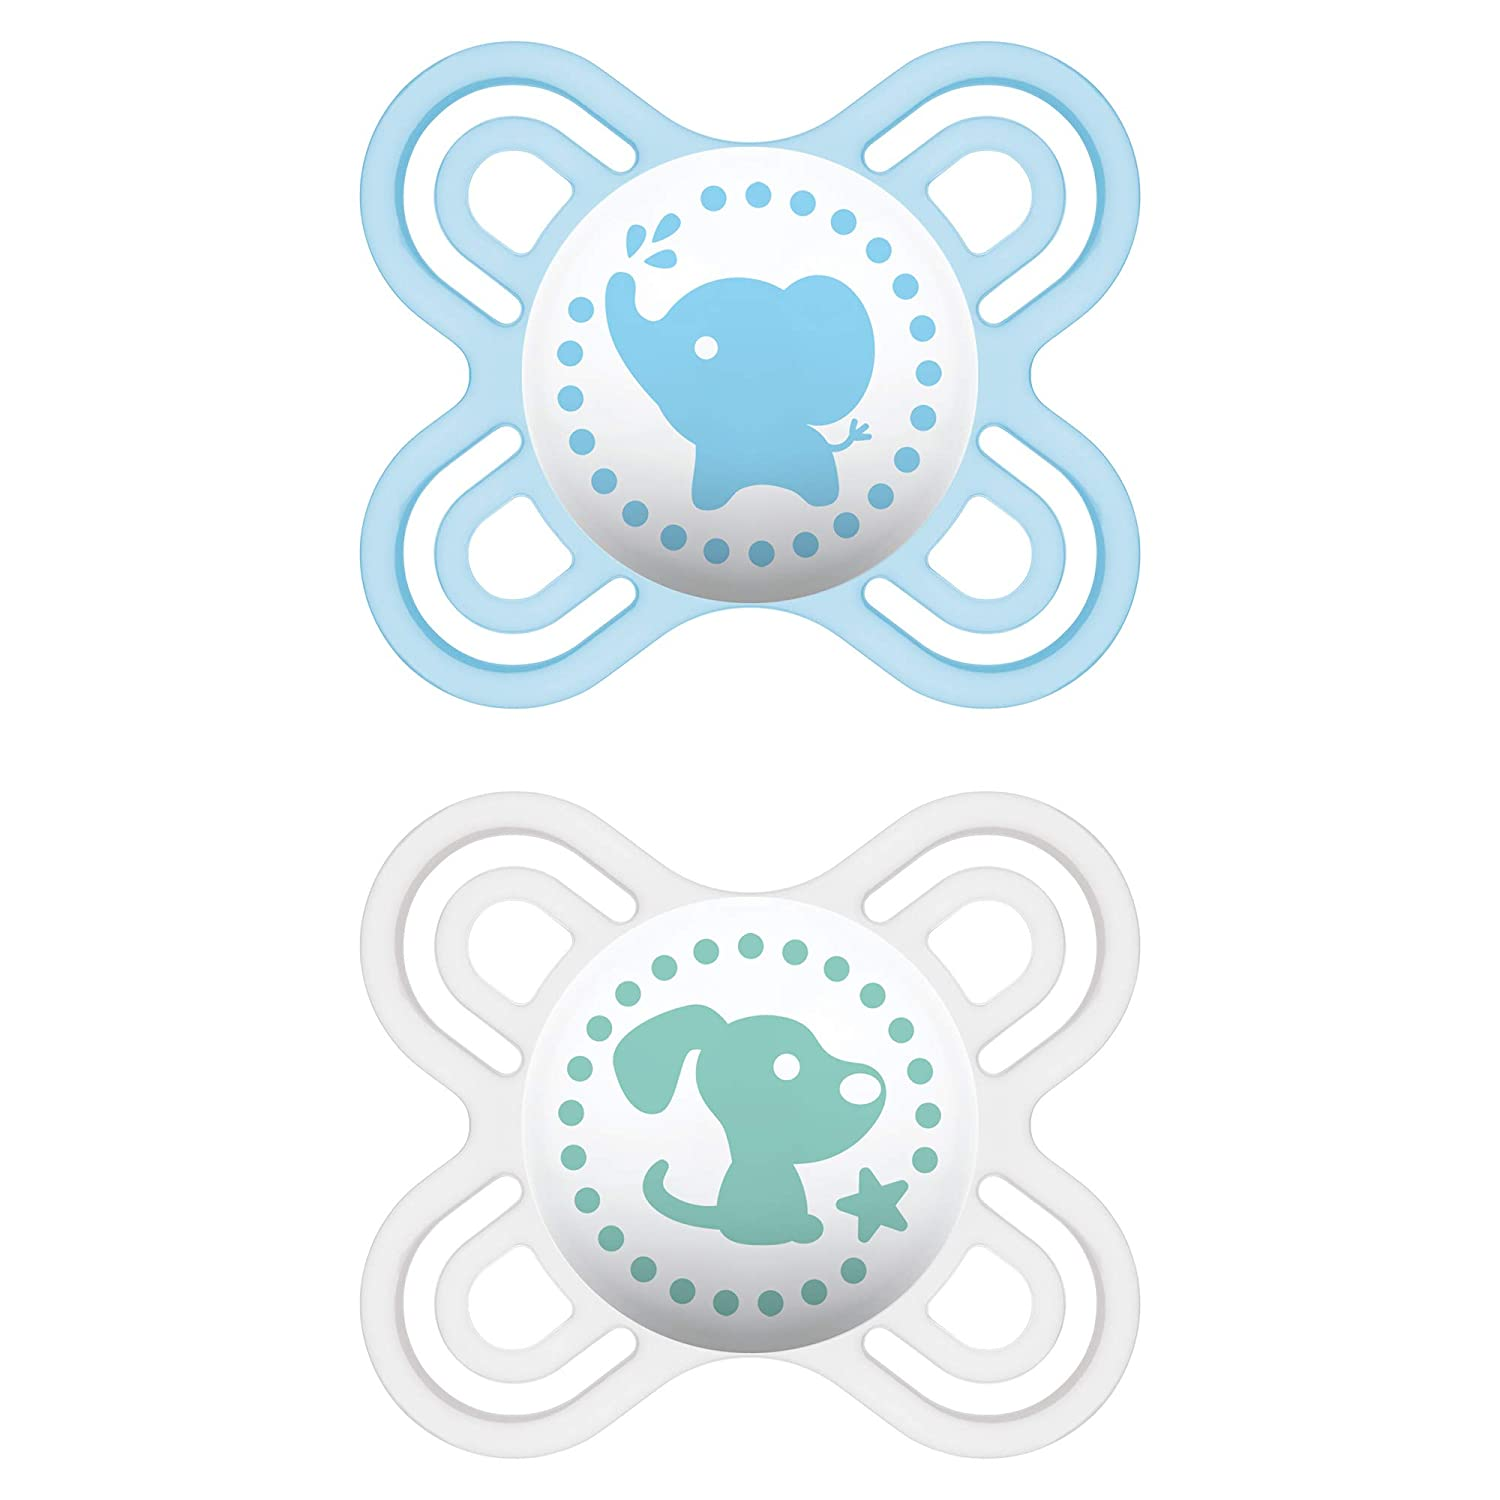 MAM Perfect Start Pacifiers, Orthodontic Pacifiers (2 pack) MAM Newborn Pacifiers, Best Pacifier for Breastfed Babies, Baby Boy Pacifier, Blue